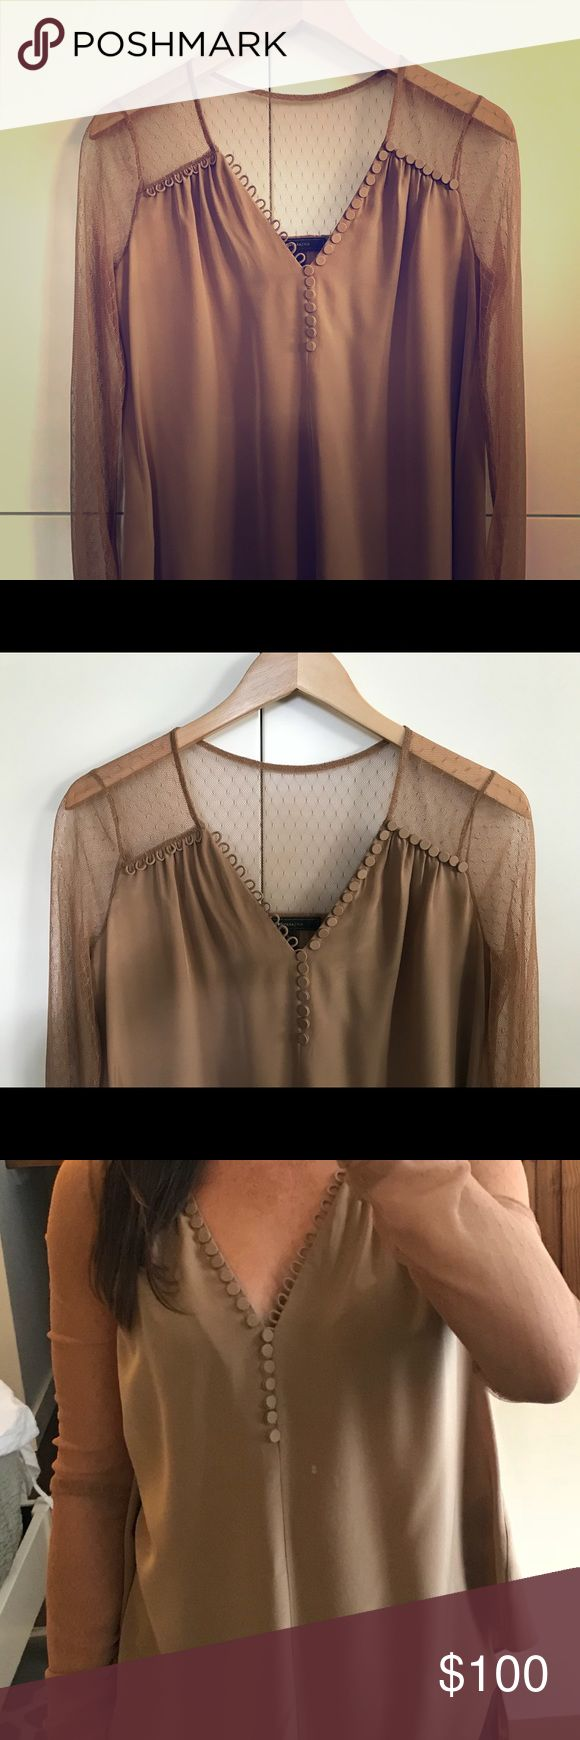 BCBG Lace Sleeve Blouse Lace Sleeve, silk blouse. Loose, but flattering body skimming fit. Longer length. Deep v neck with button detailing. Looks great with jeans or polished leggings! XXS but runs on the larger side. BCBGMaxAzria Tops Blouses